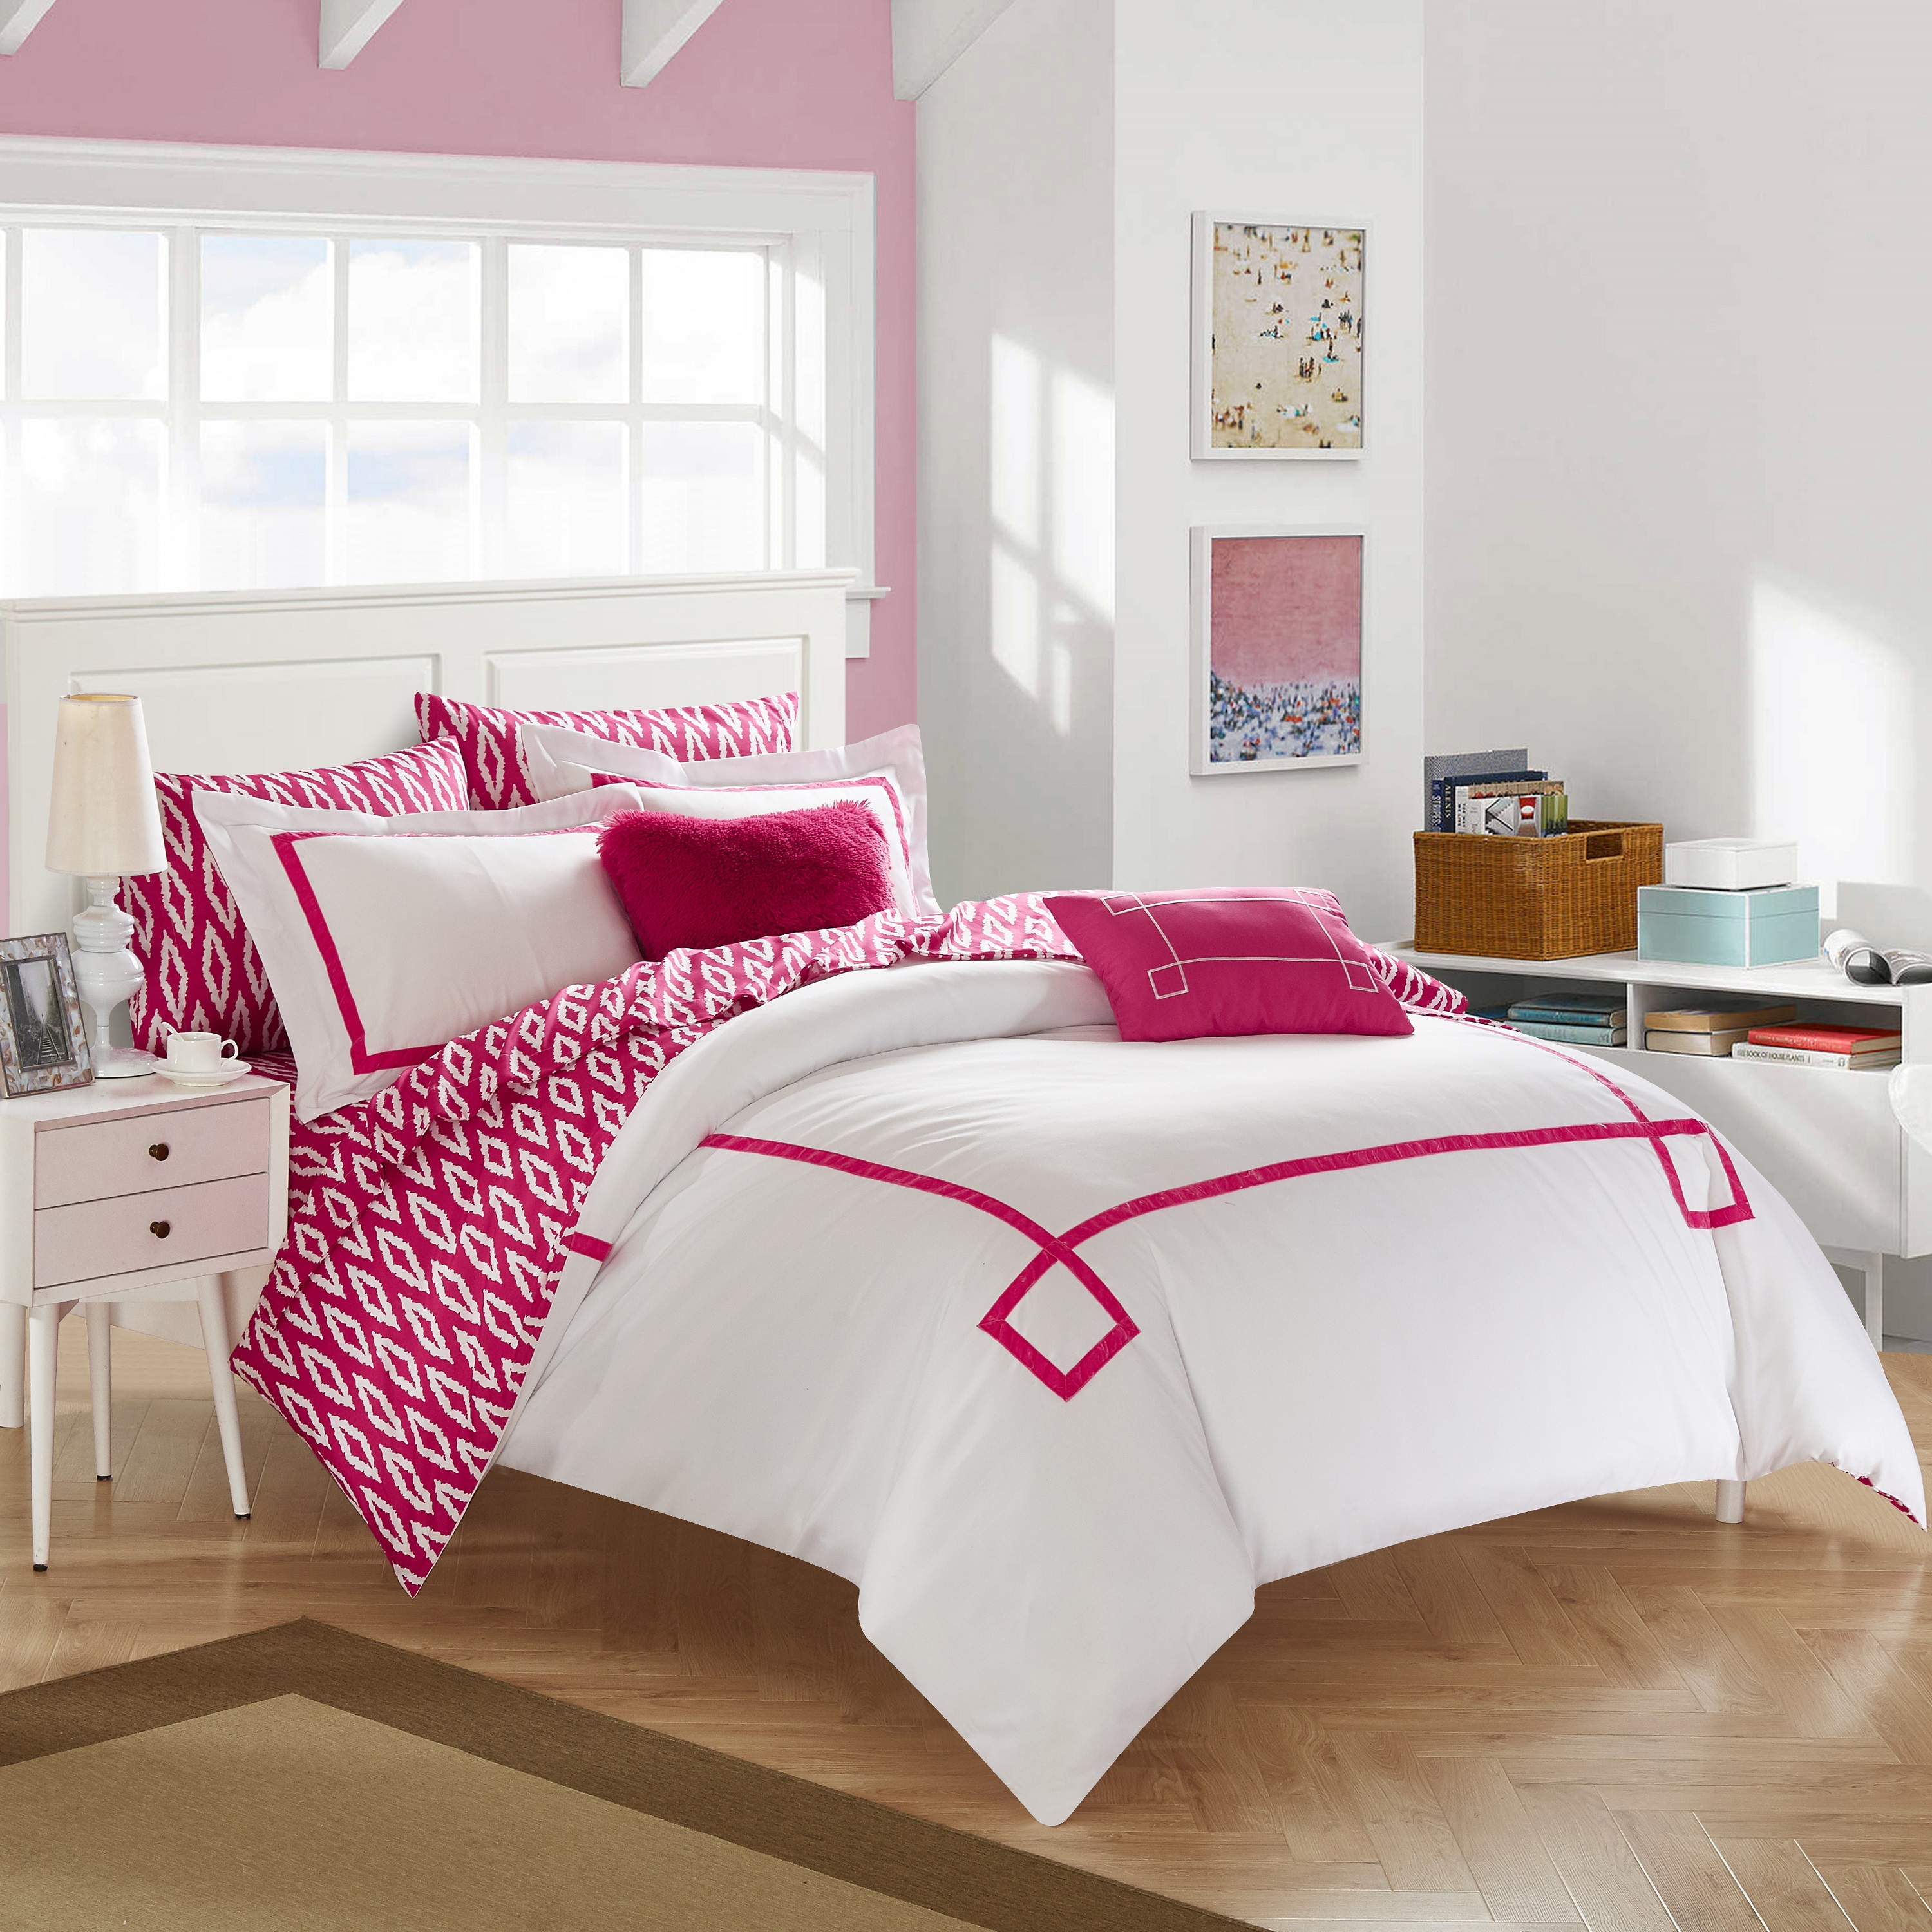 Chic Home Edrea Reversible Bed in a Bag Comforter Set